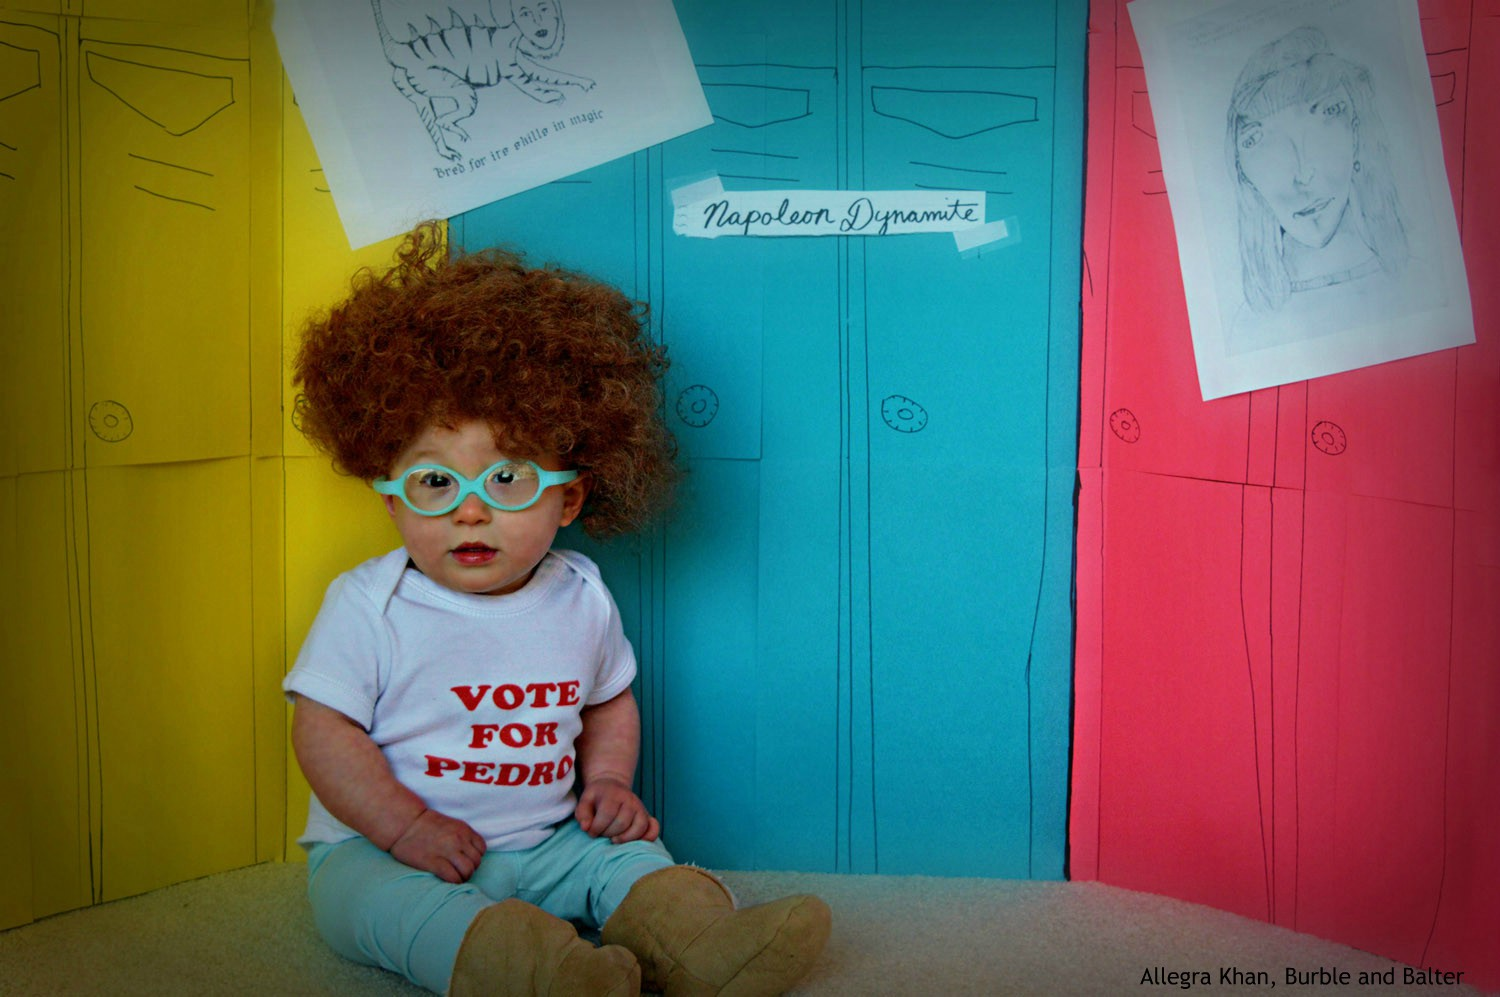 Napoleon-Dynamite-2-Baby-Photoshoot-Costume-Burble-and-Balter.jpg